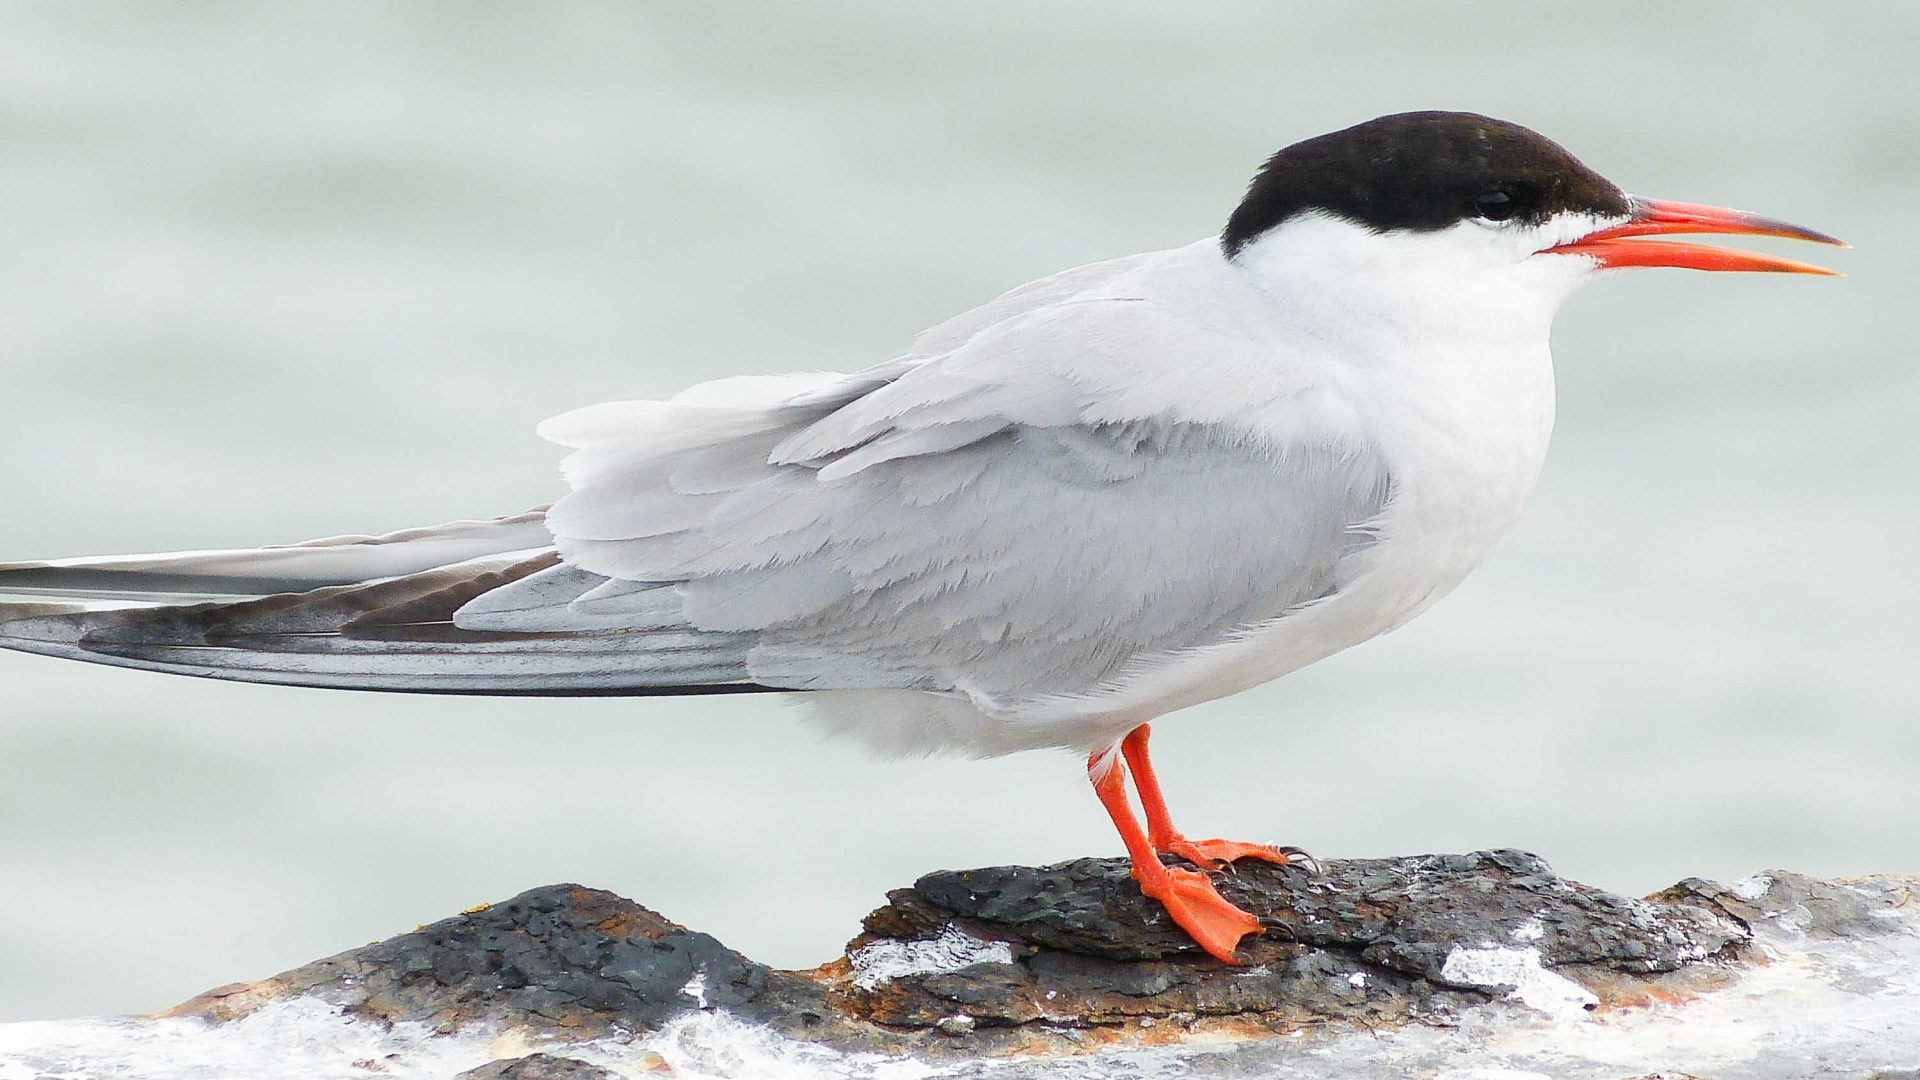 The common tern in Scotland.